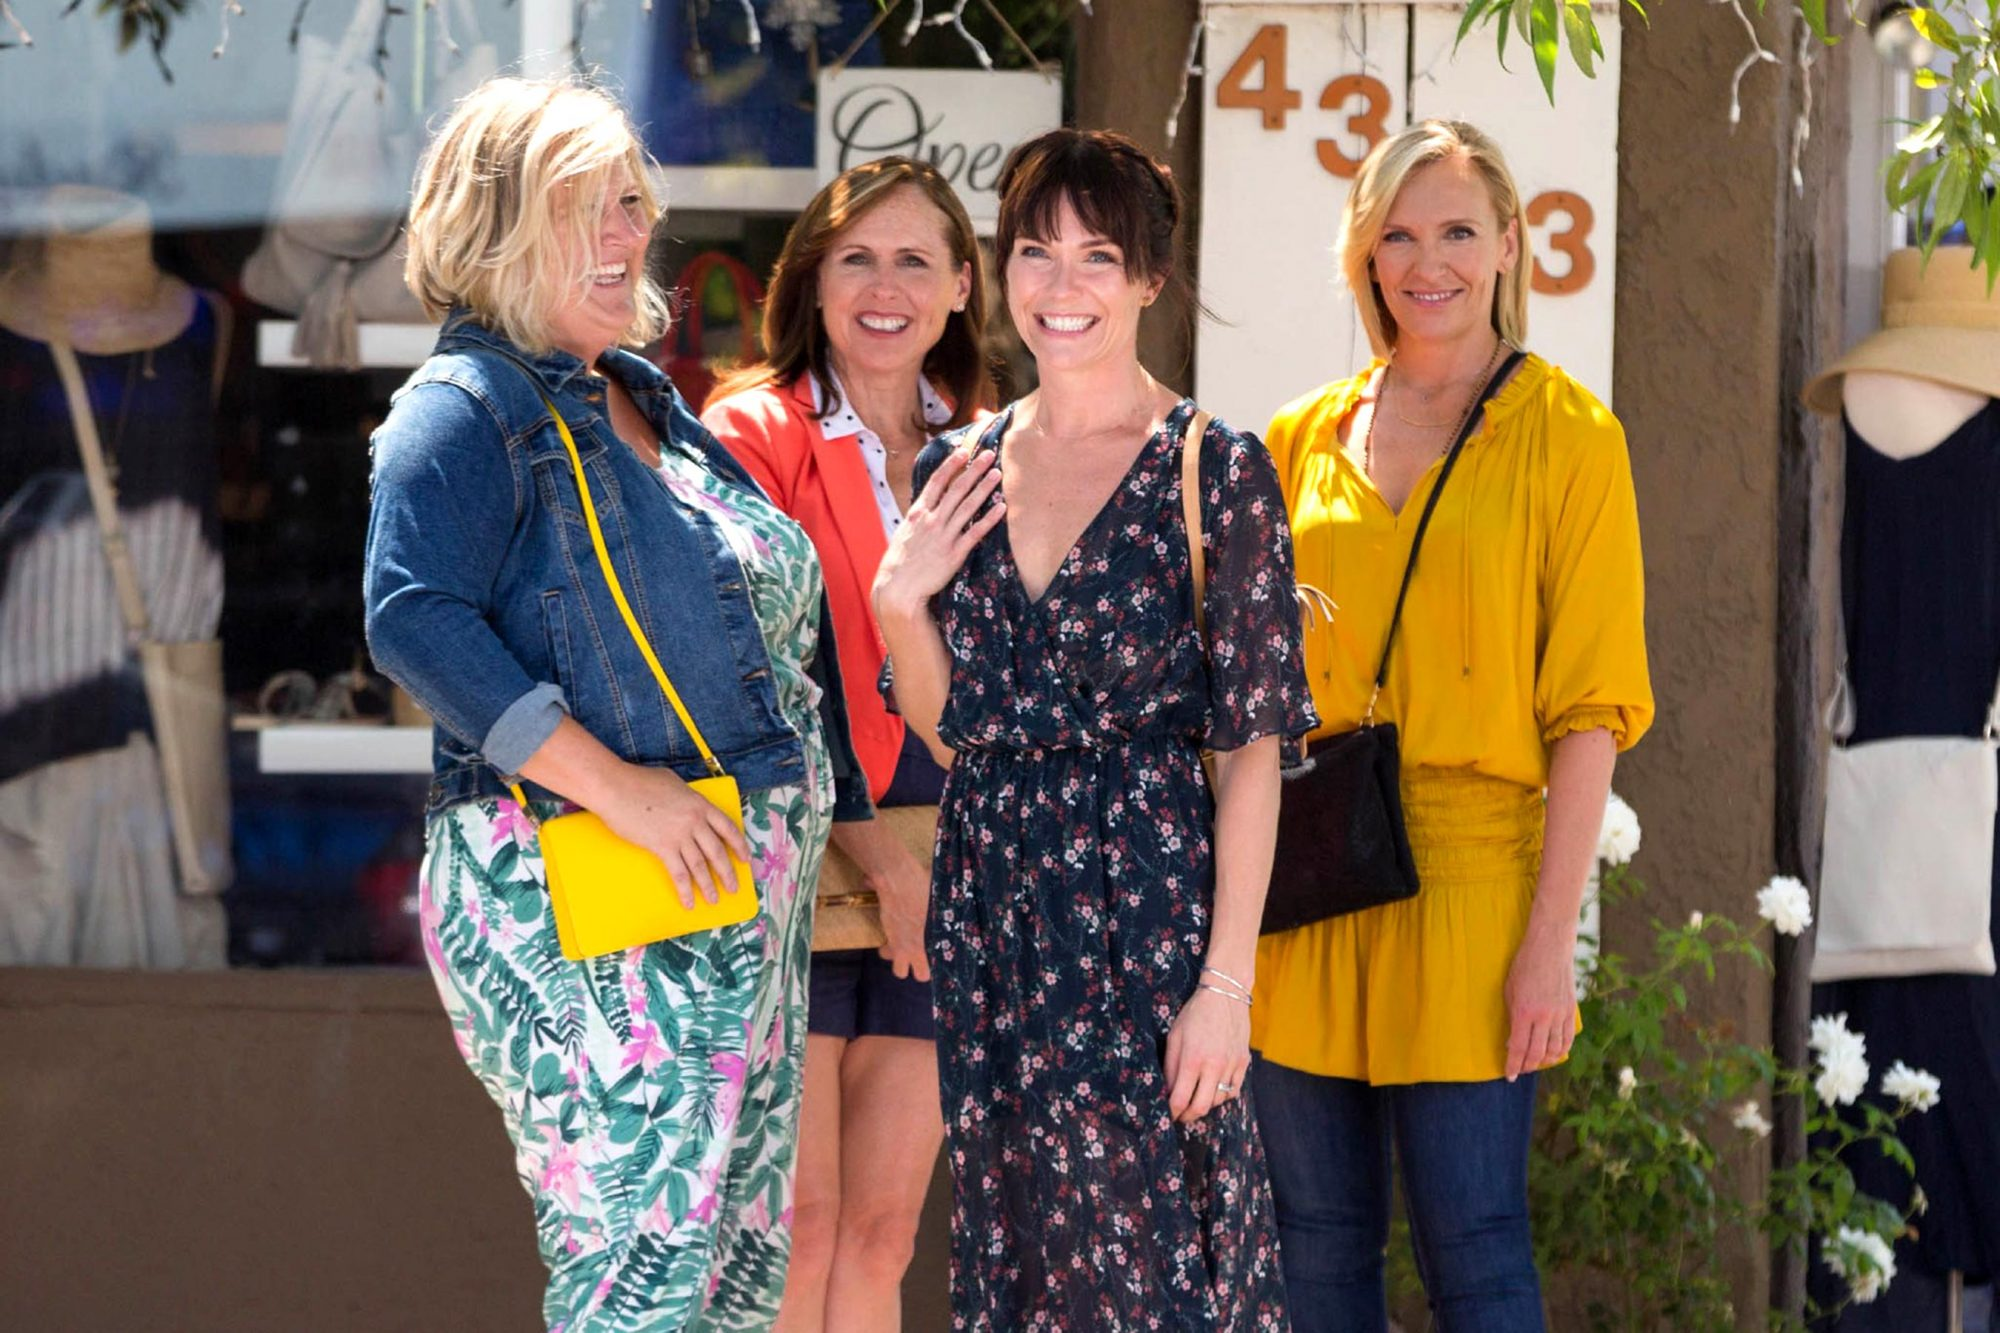 FUN MOM DINNER, from left: Bridget Everett, Molly Shannon, Katie Aselton, Toni Collette, 2017. ph: